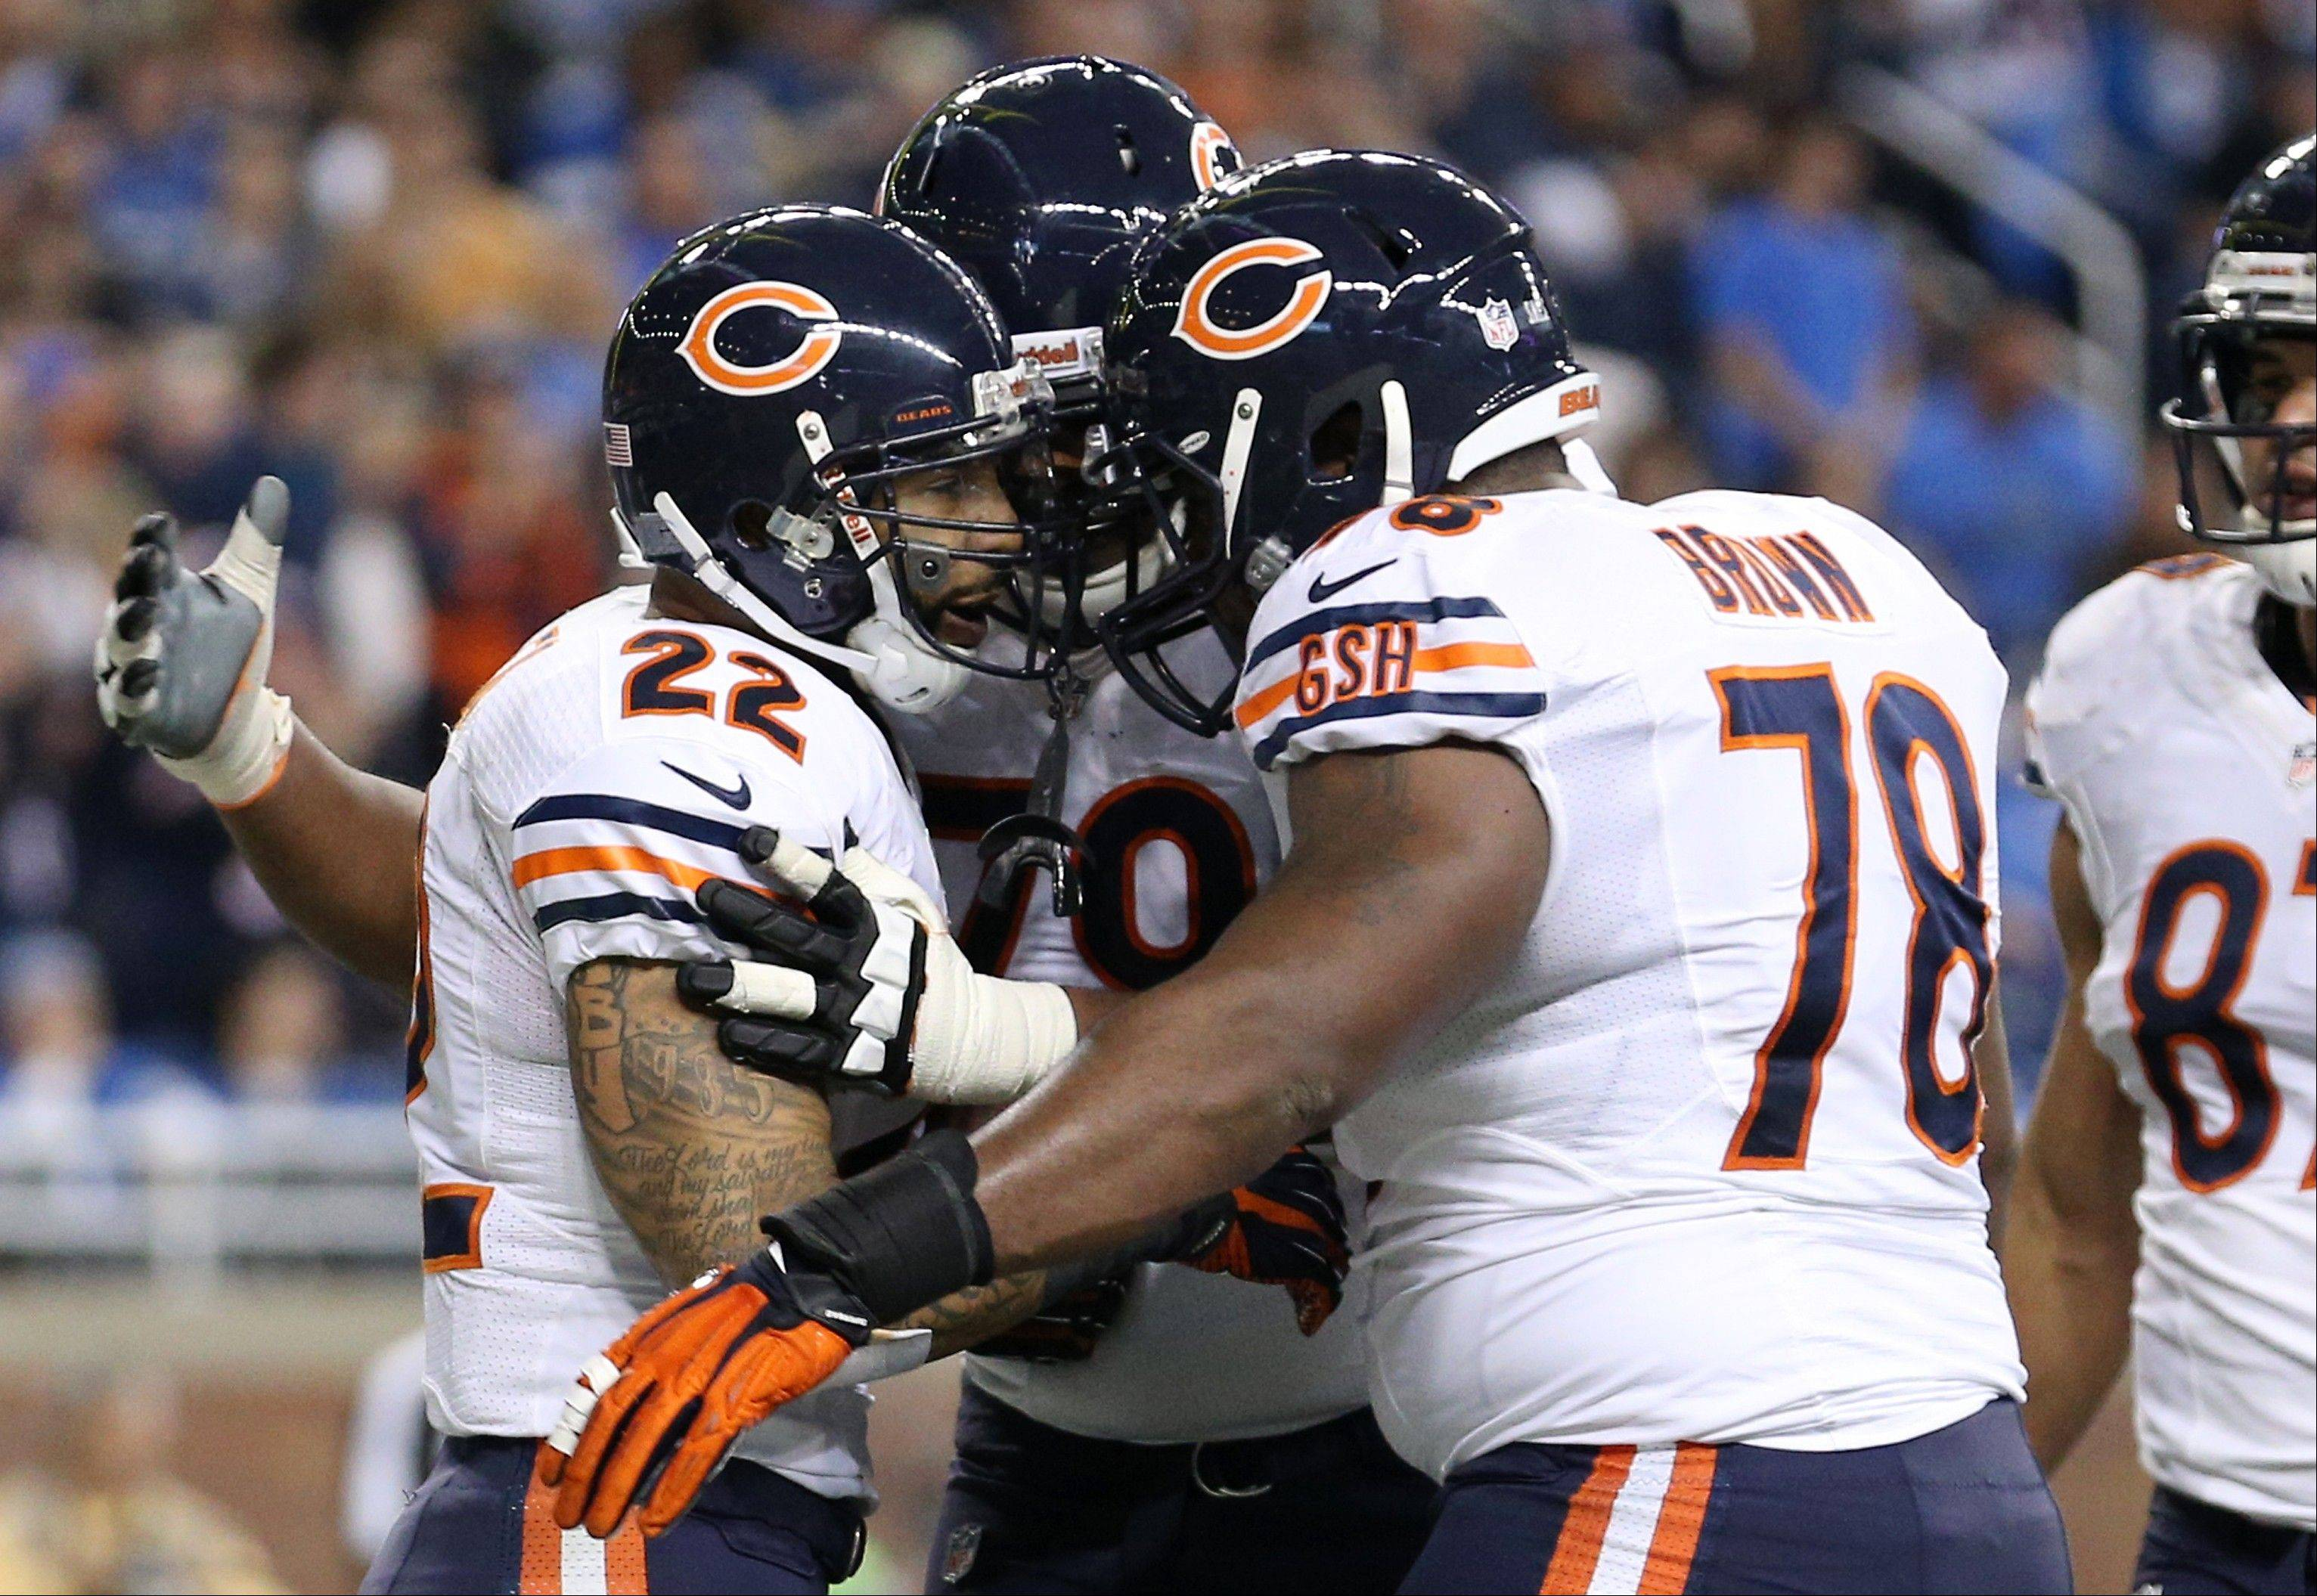 Bears running back Matt Forte is congratulated by teammates after his 1-yard touchdown during the second quarter of an NFL football game against the Detroit Lions at Ford Field in Detroit, Sunday, Dec. 30, 2012.